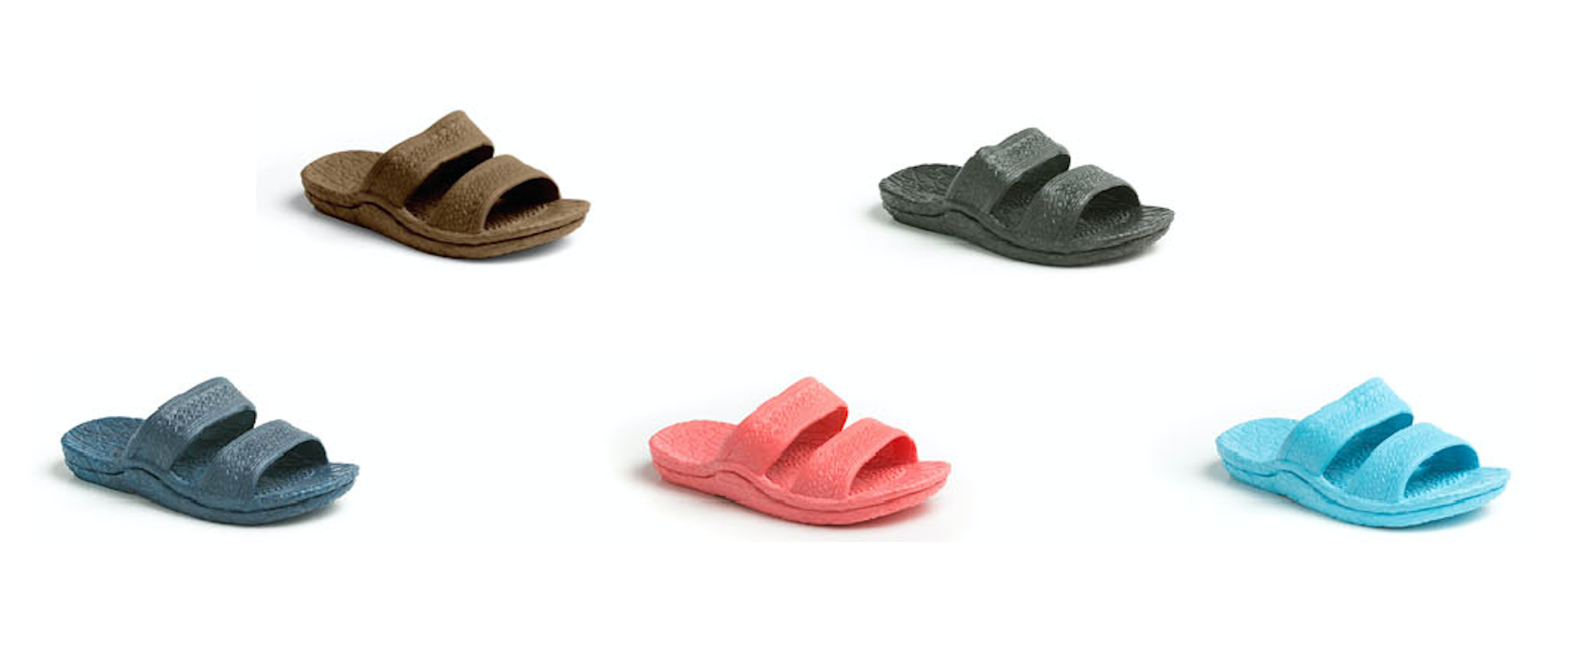 Kids Jandals® - Brown, Black, Navy, Pink and Aqua